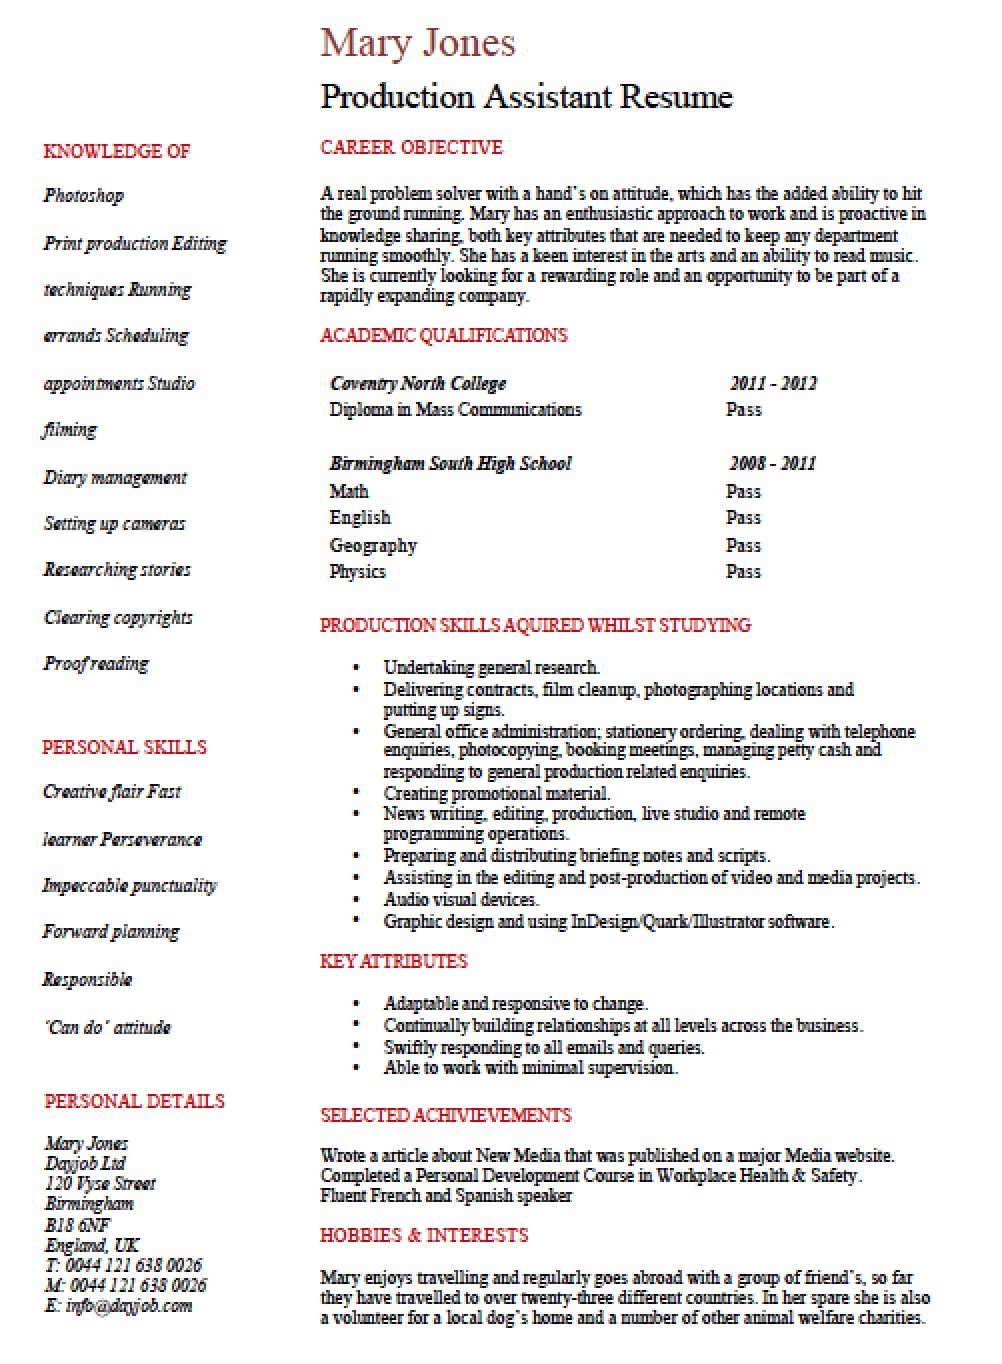 Sample resume production assistant movie